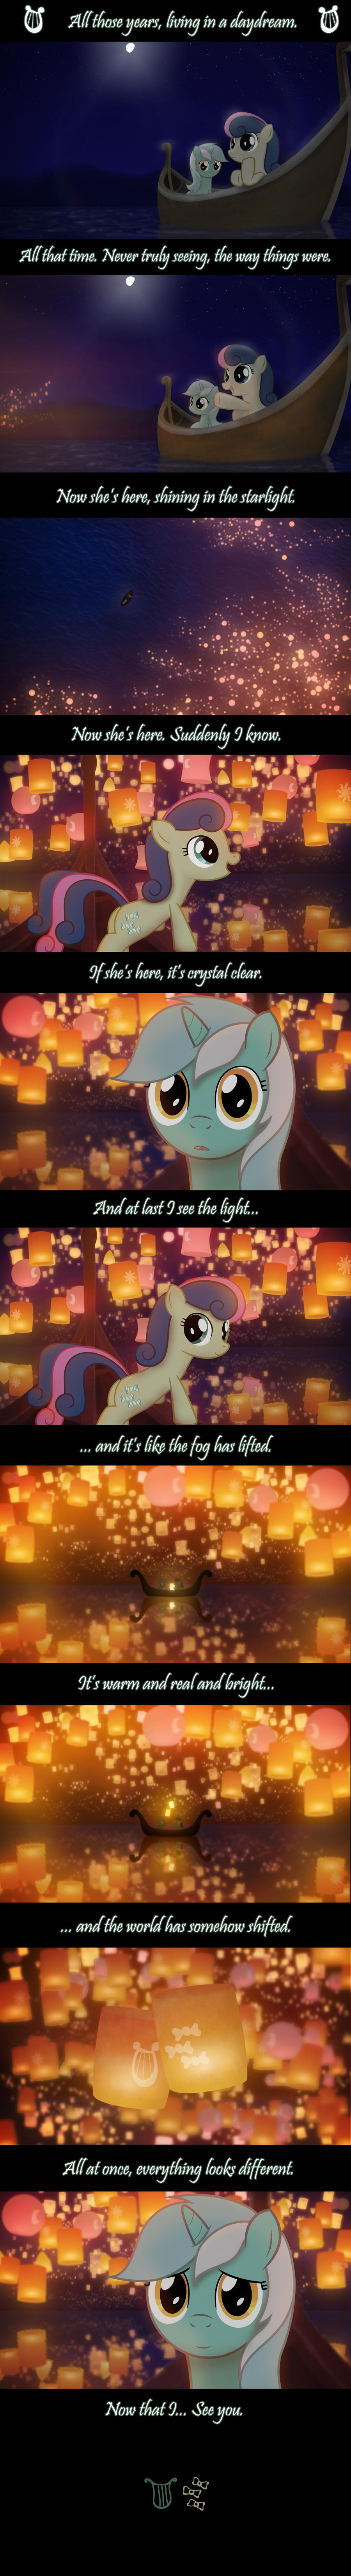 And at Last I See the Light by Why485